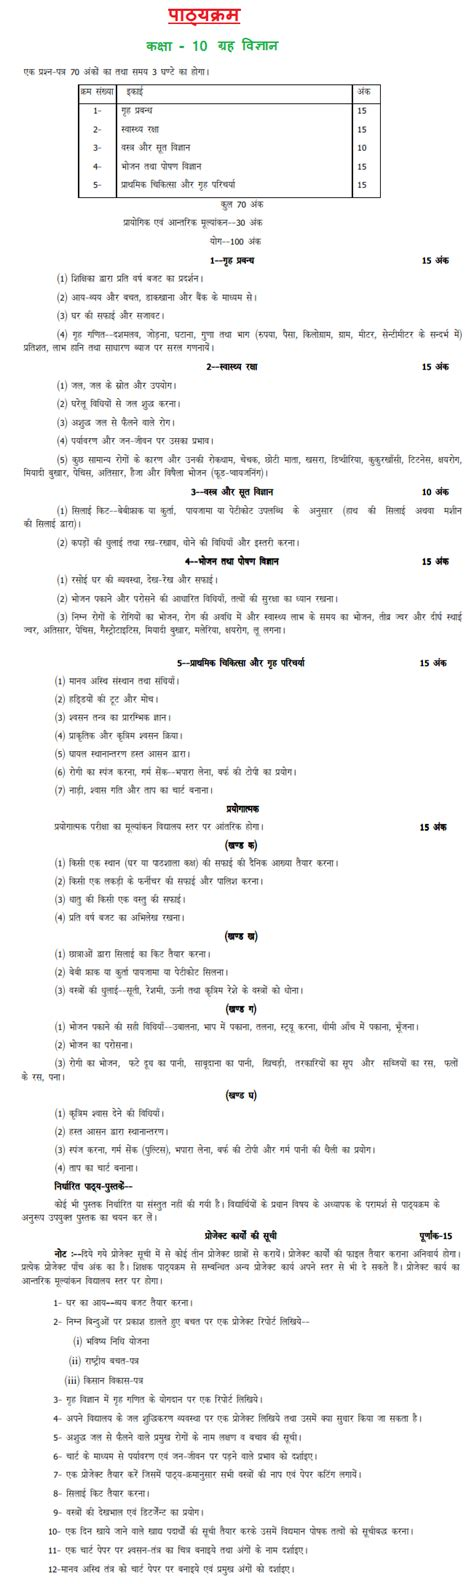 pattern paper of 10th class 2017 up board class 10th home science syllabus 2017 2018